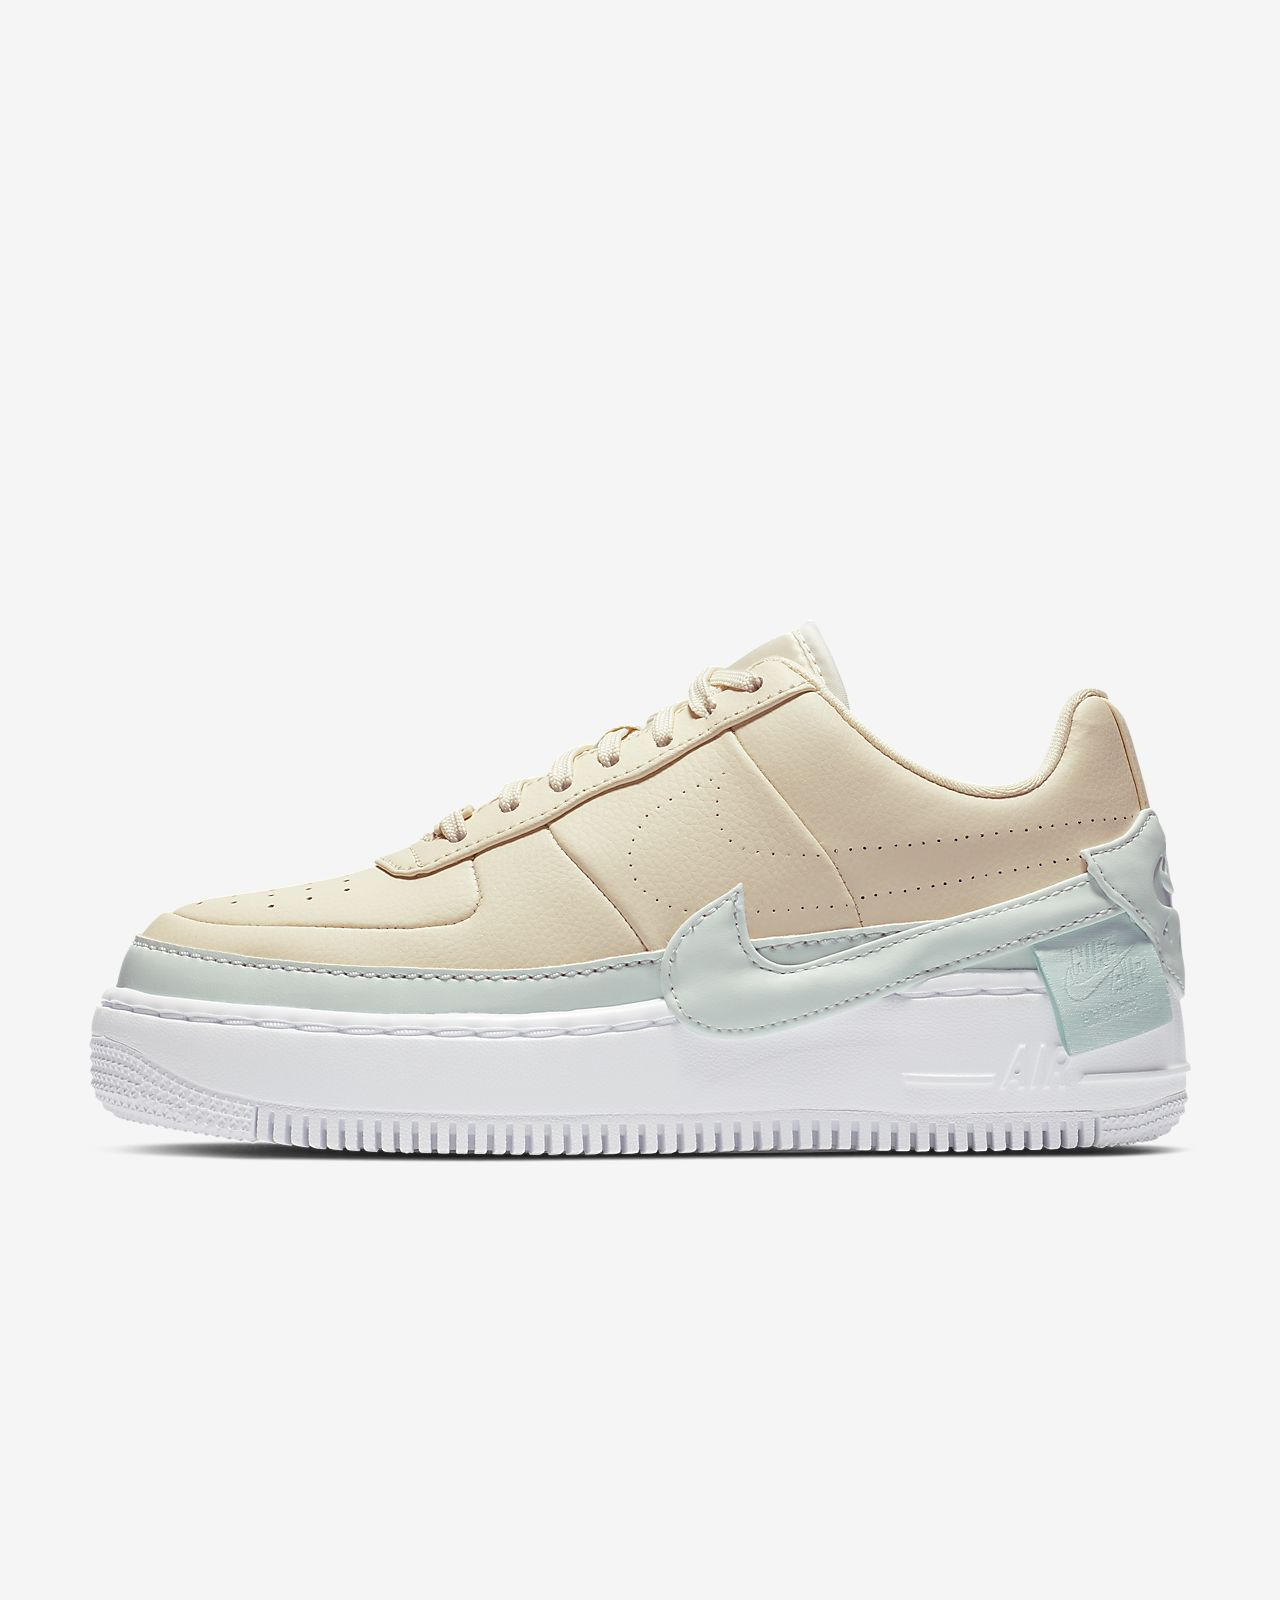 the best attitude 71321 52d3c ... Chaussure Nike Air Force 1 Jester XX pour Femme